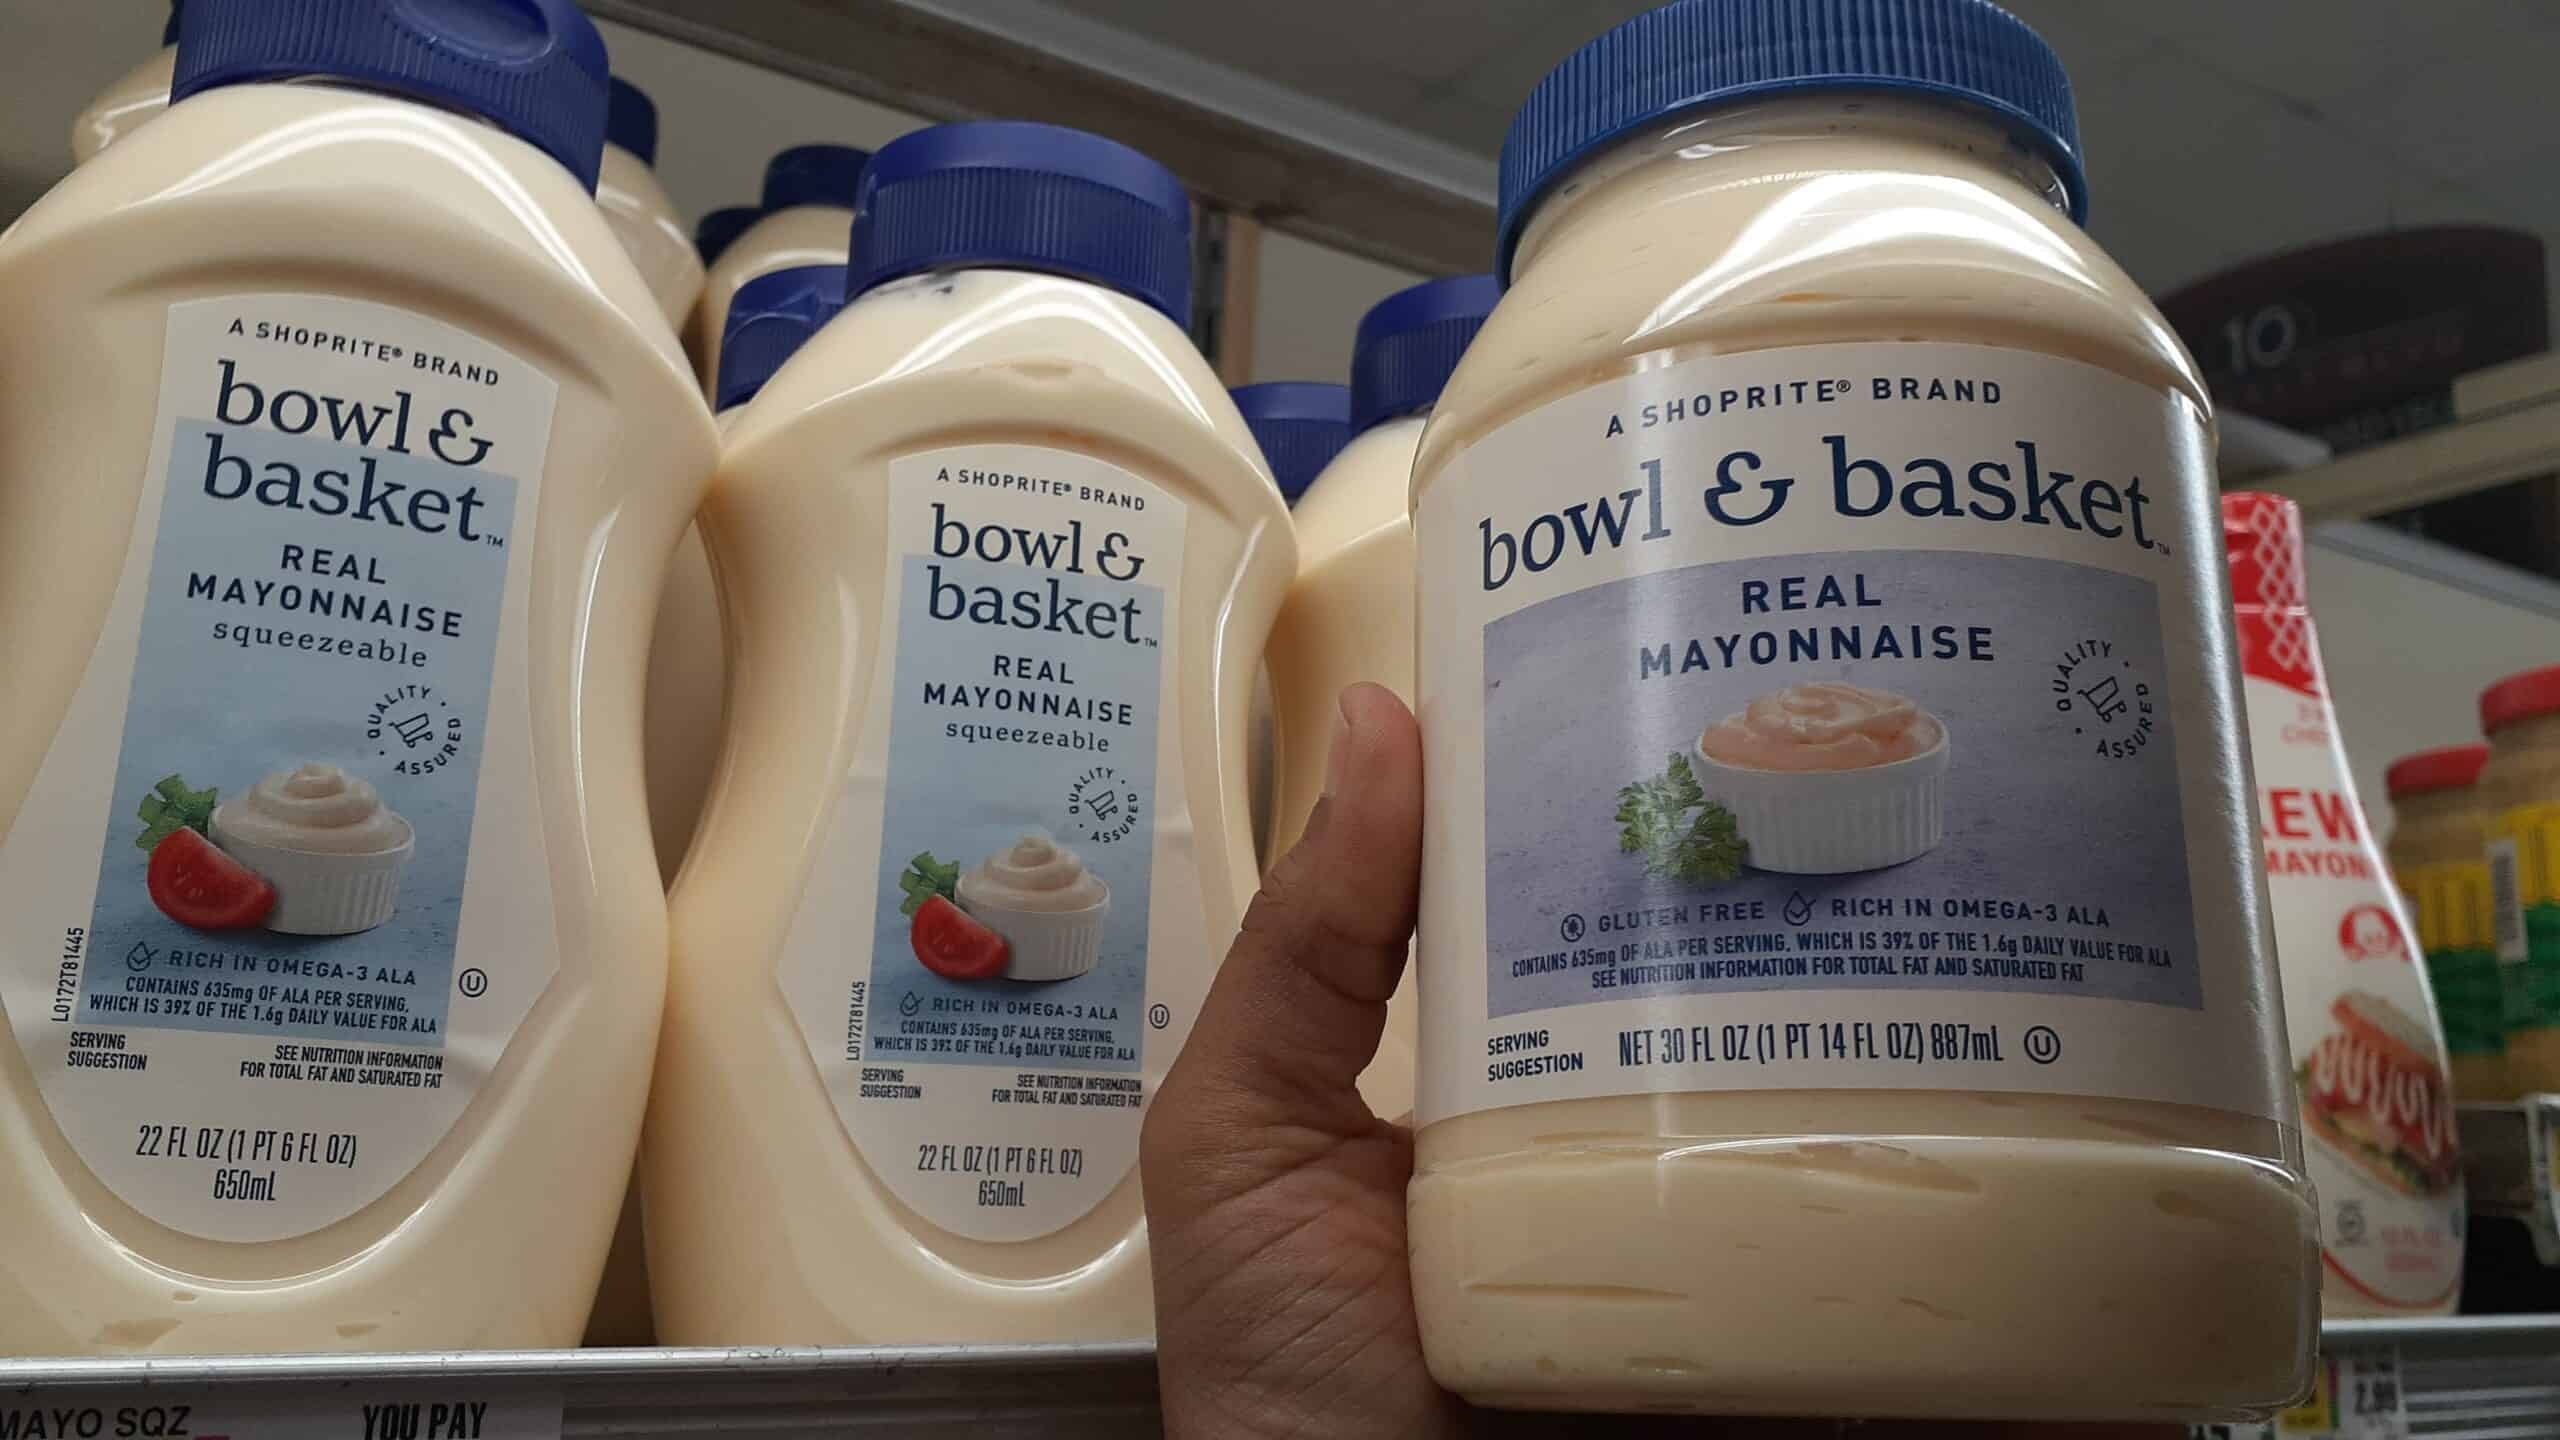 Bowl & Basket Mayo at Shoprite